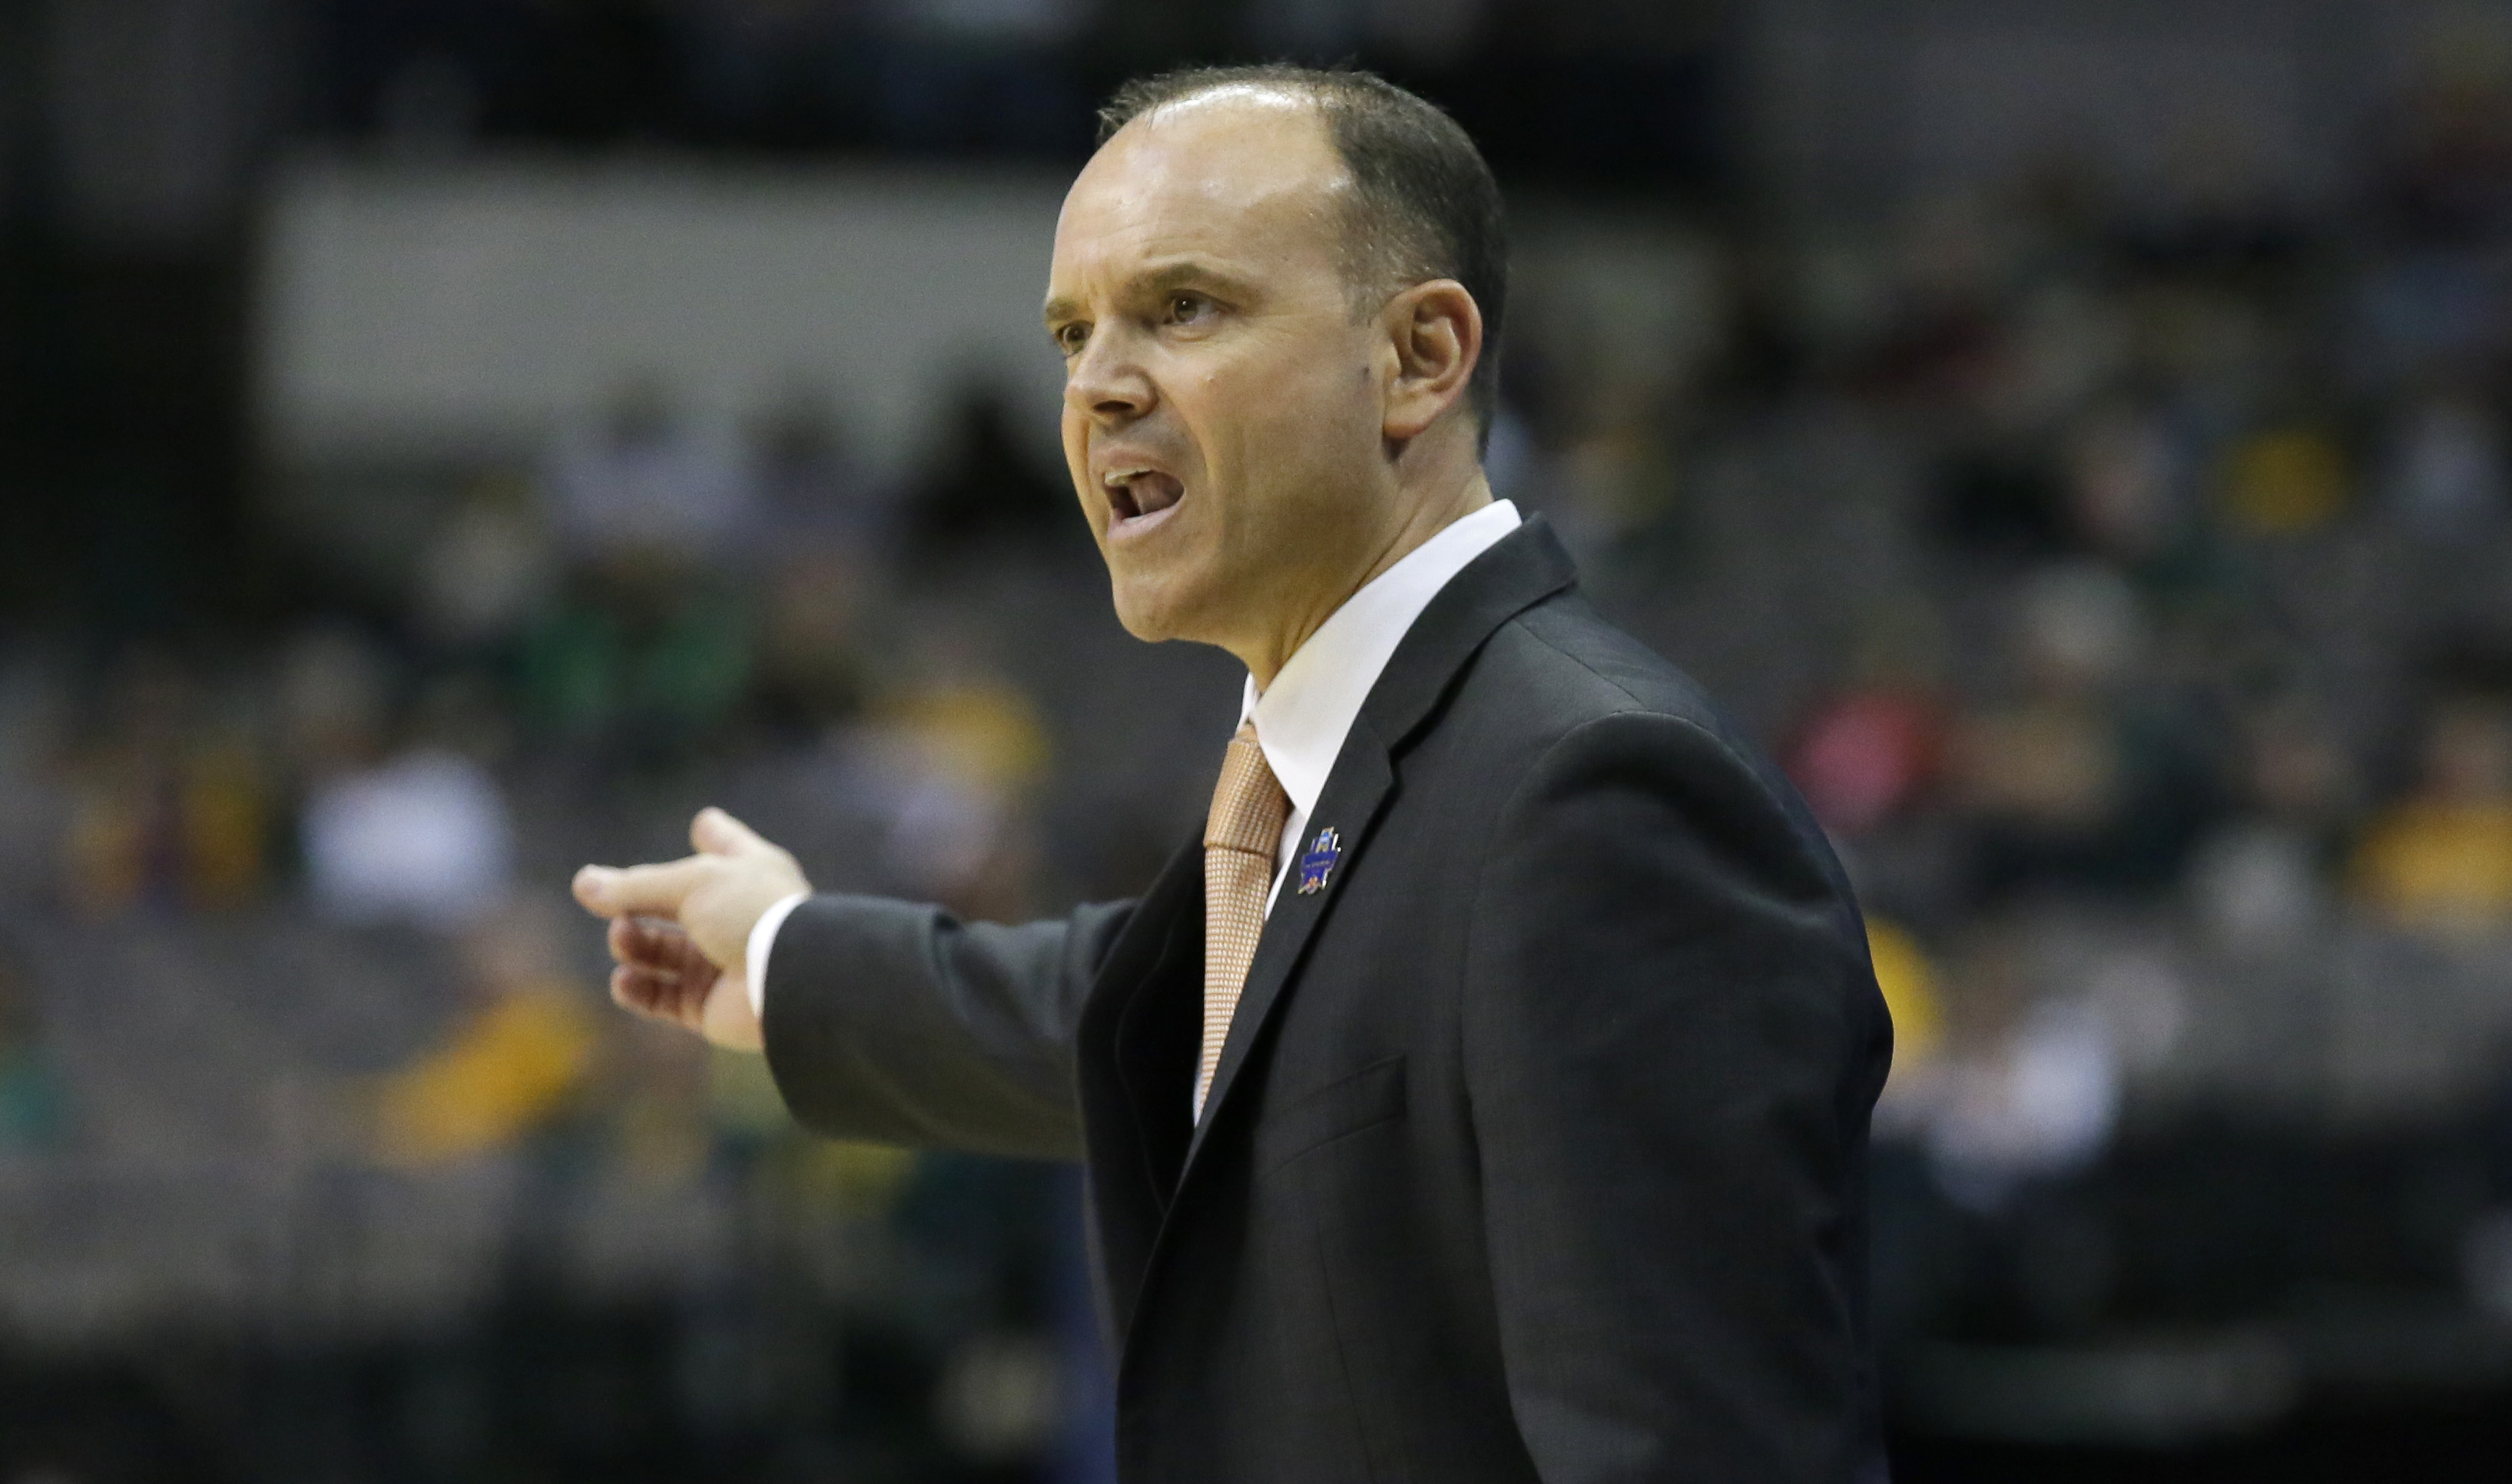 Oregon State head coach Scott Rueck gives directions during the first half of an NCAA college basketball game against DePaul in the regional semifinals of the women's NCAA Tournament Saturday, March 26, 2016, in Dallas. (AP Photo/LM Otero)